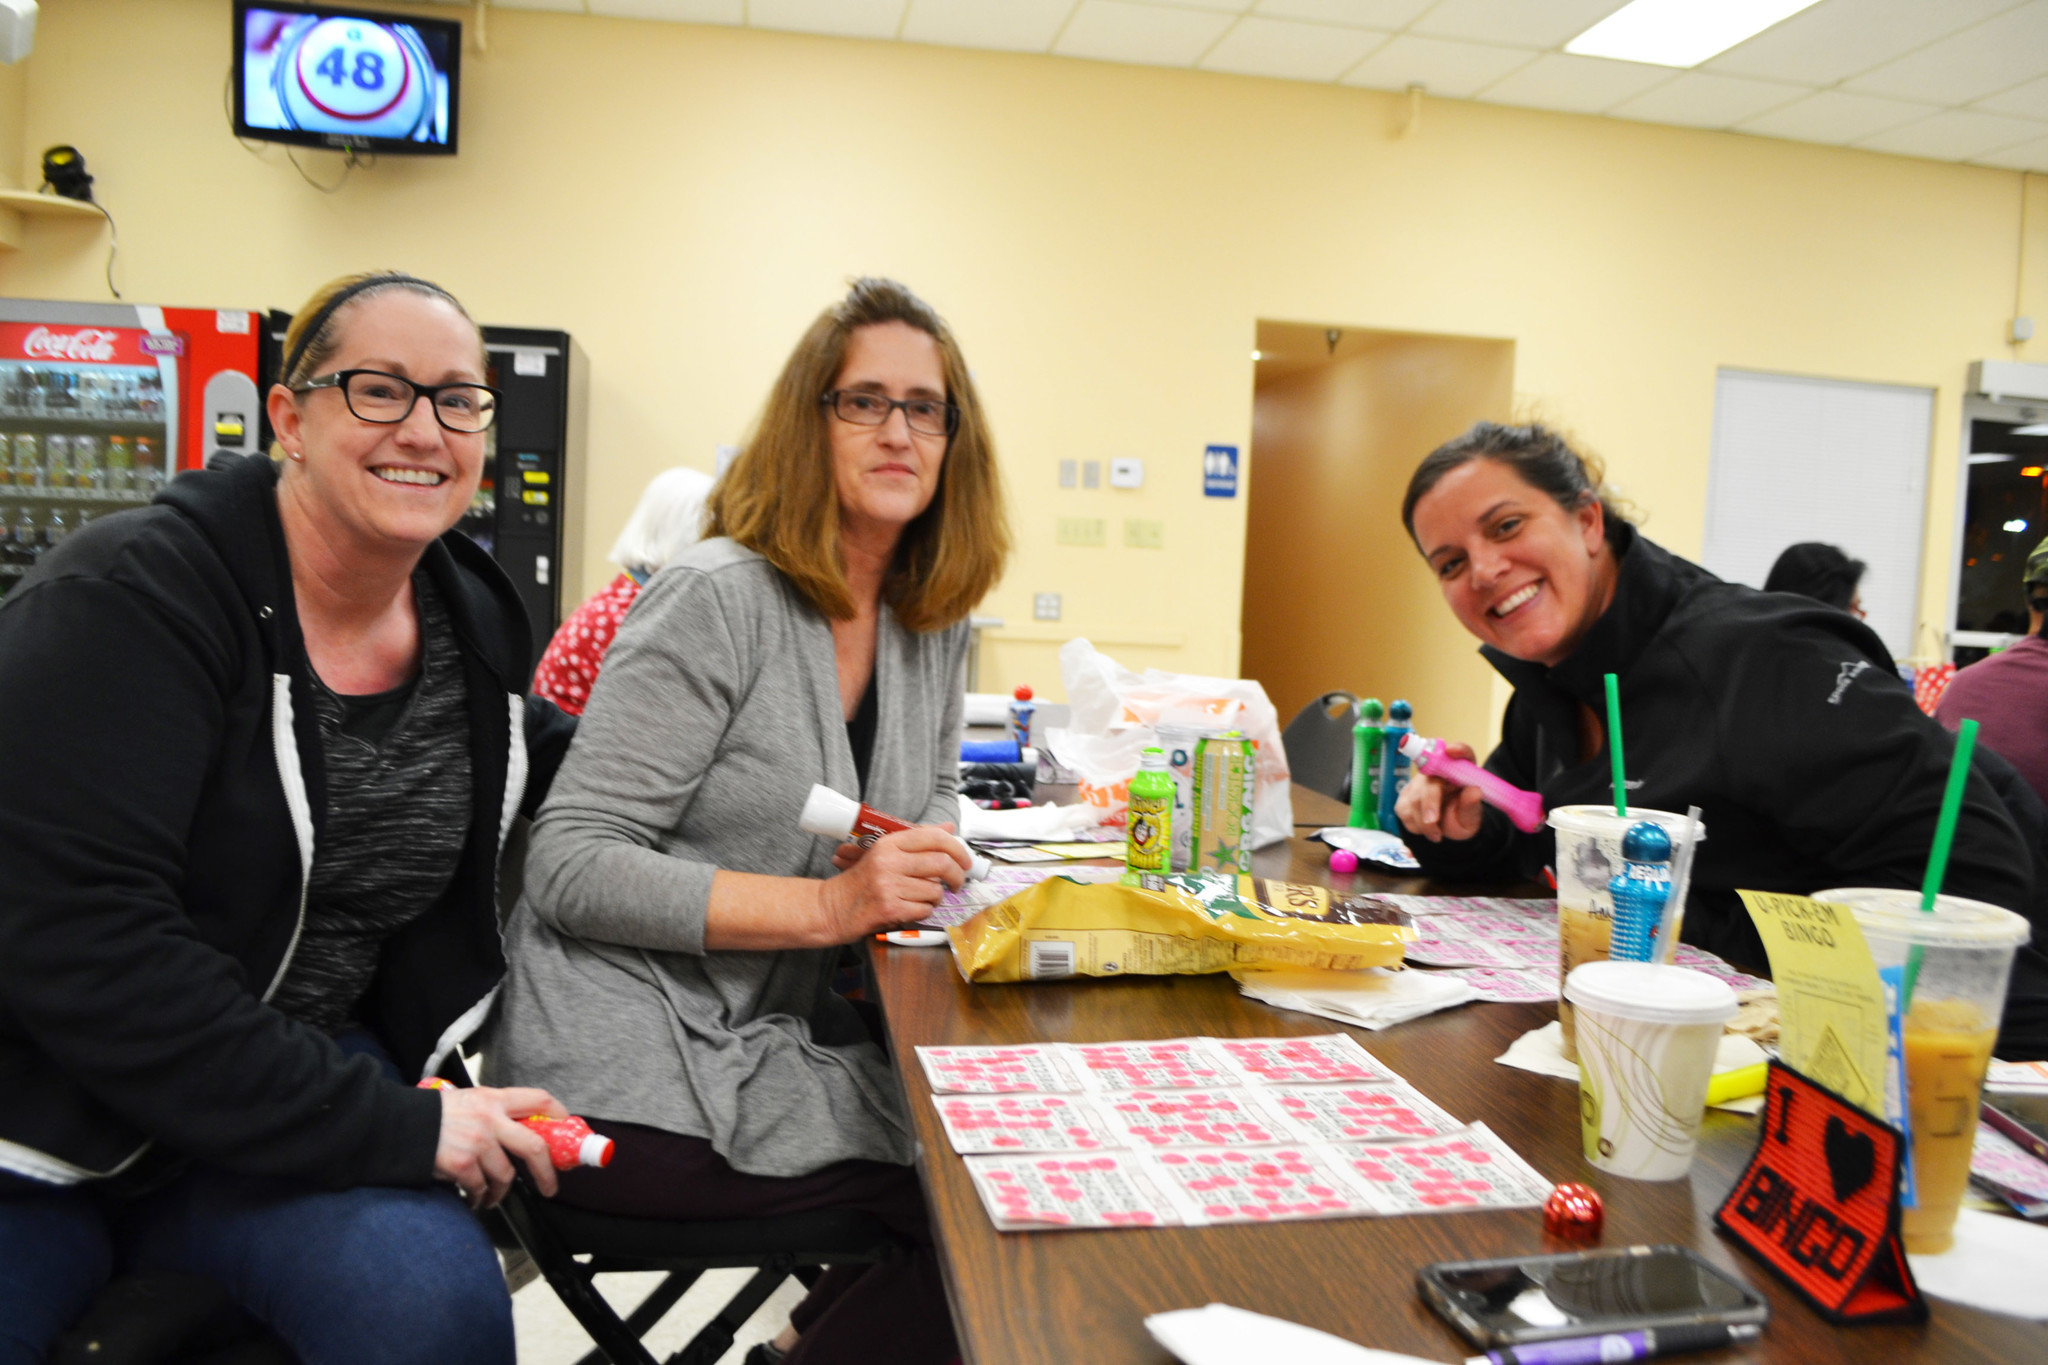 Kathy Galvez, Ursula Barnes and Amber Giacalone playing bingo at the Poway Senior Center. Galvez and Giacalone said bingo is their chance to do something fun and social with each other.